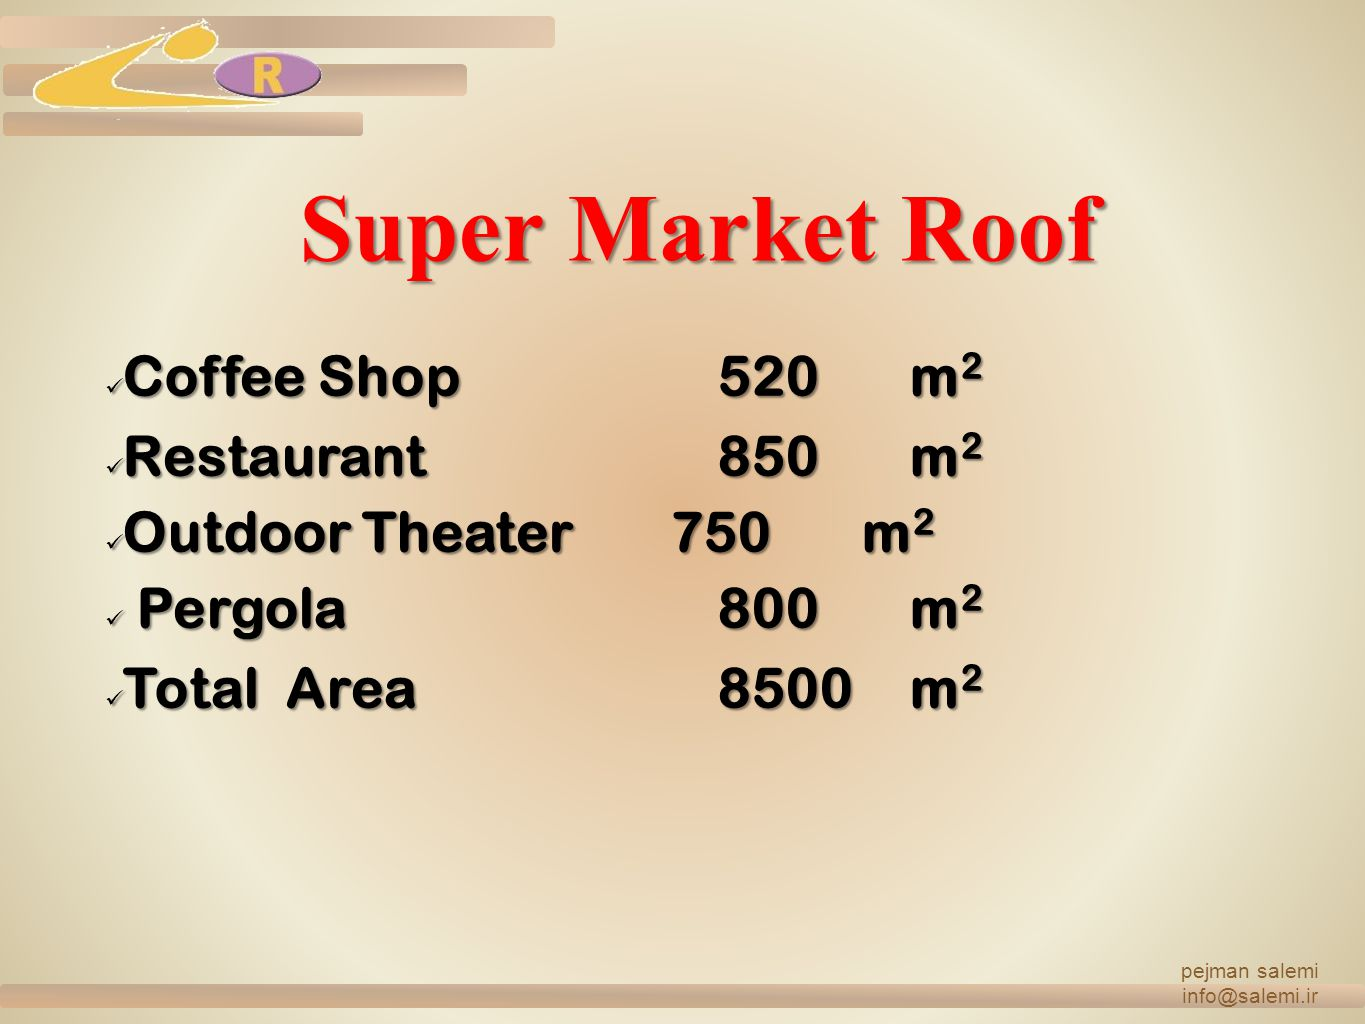 Super Market Roof Coffee Shop 520 m2 Restaurant 850 m2